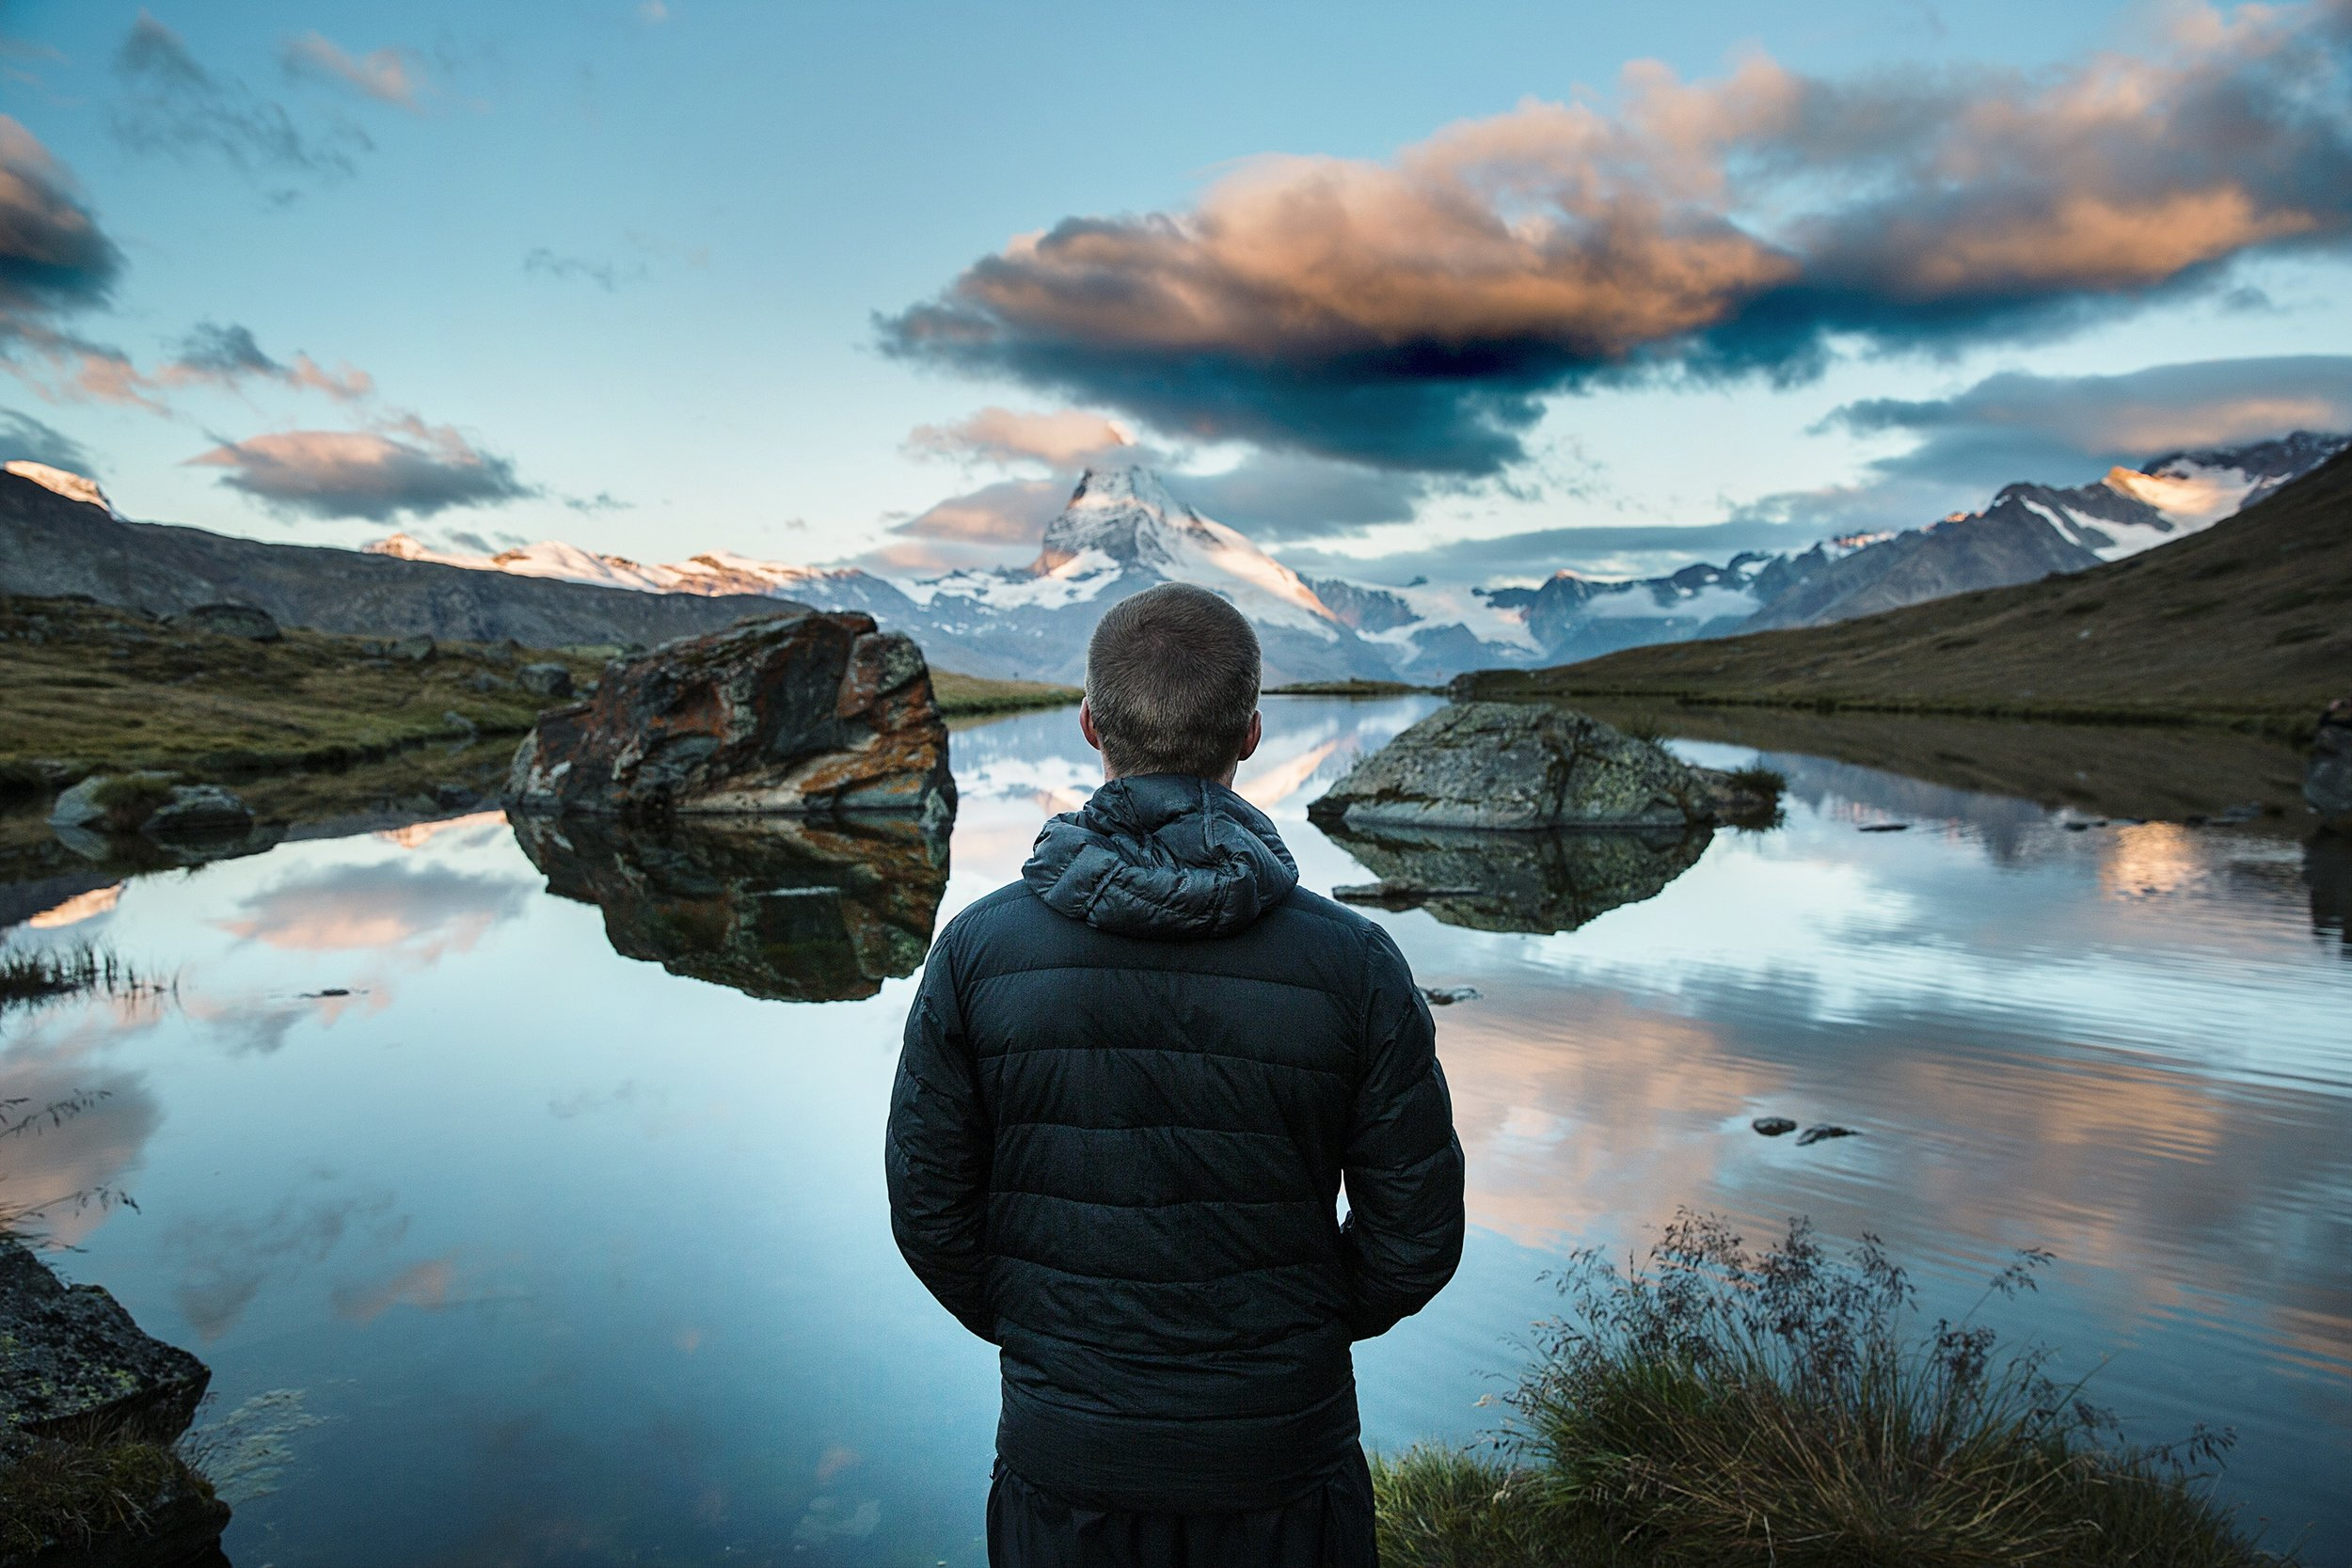 Man, mountains, lake. Feeling fearful, lonely, sick, stuck, frustrated, worried, money woes, relationship problems, shame, hopelessness?